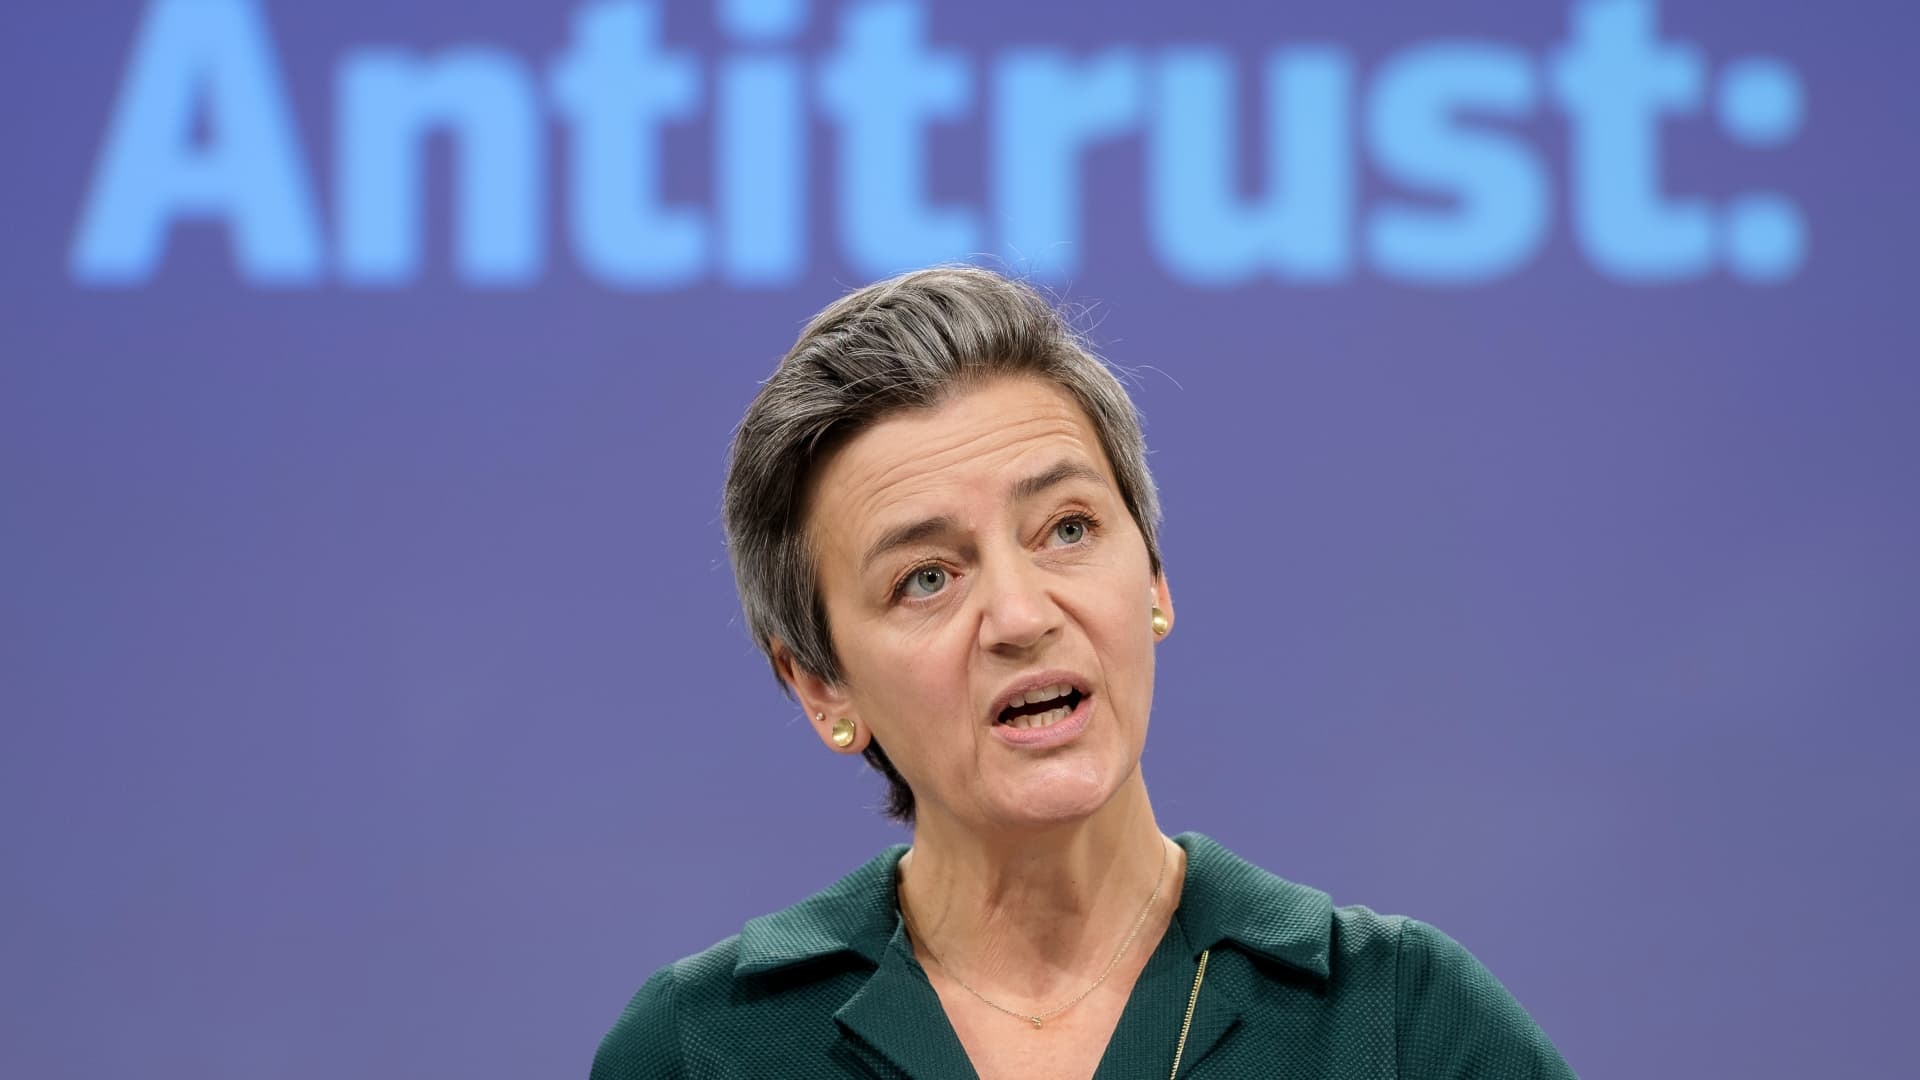 EU Commissioner for A Europe Fit for the Digital Age - Executive Vice President Margrethe Vestager is talking to media during a virtual press briefing in the Berlaymont, the EU Commission headquarter on November 26, 2020, in Brussels, Belgium.